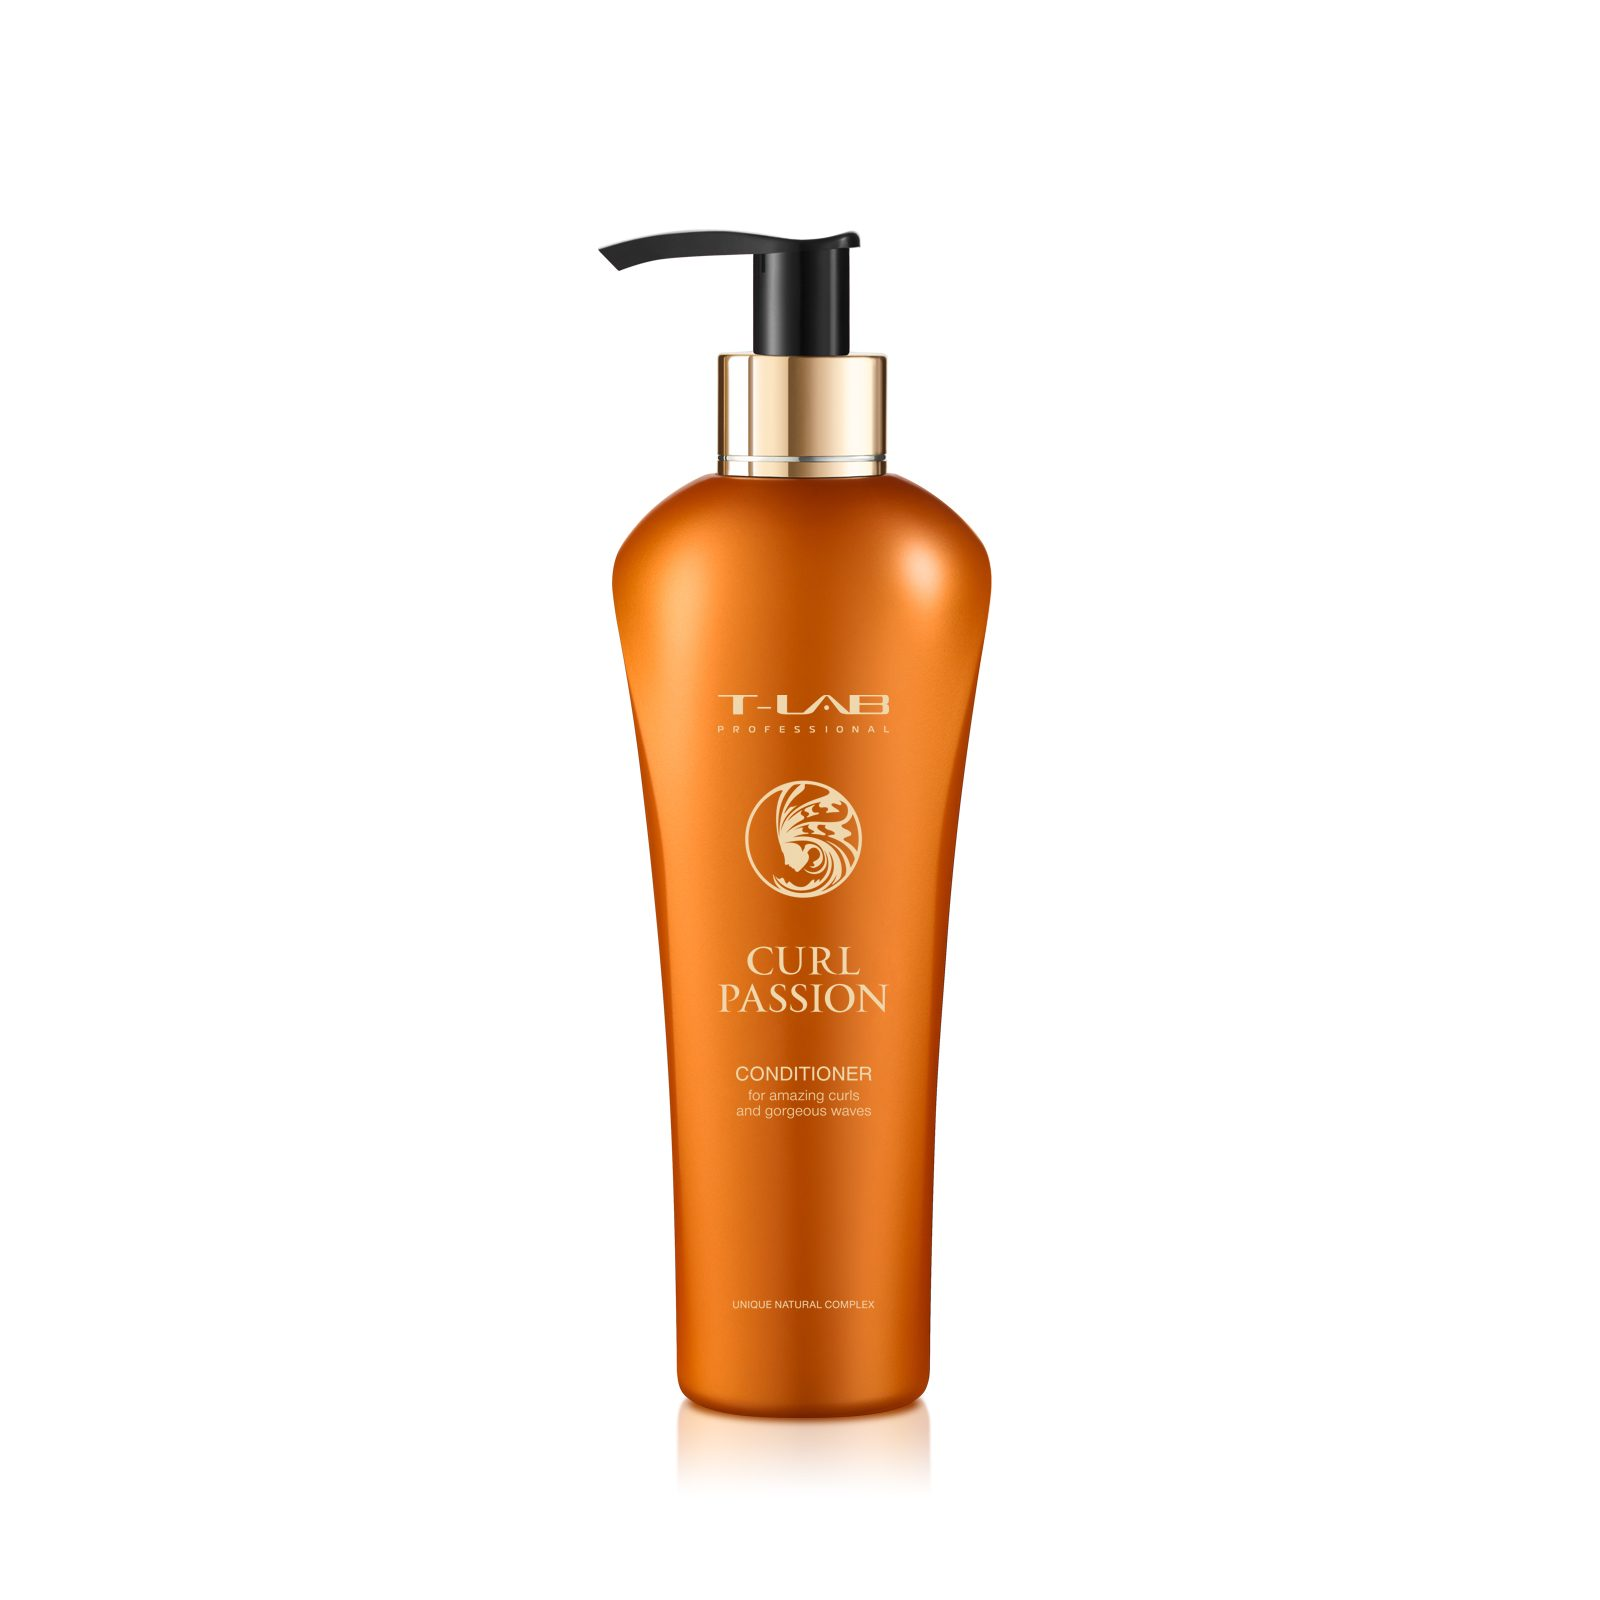 CURL PASSION CONDITIONER 250 ml